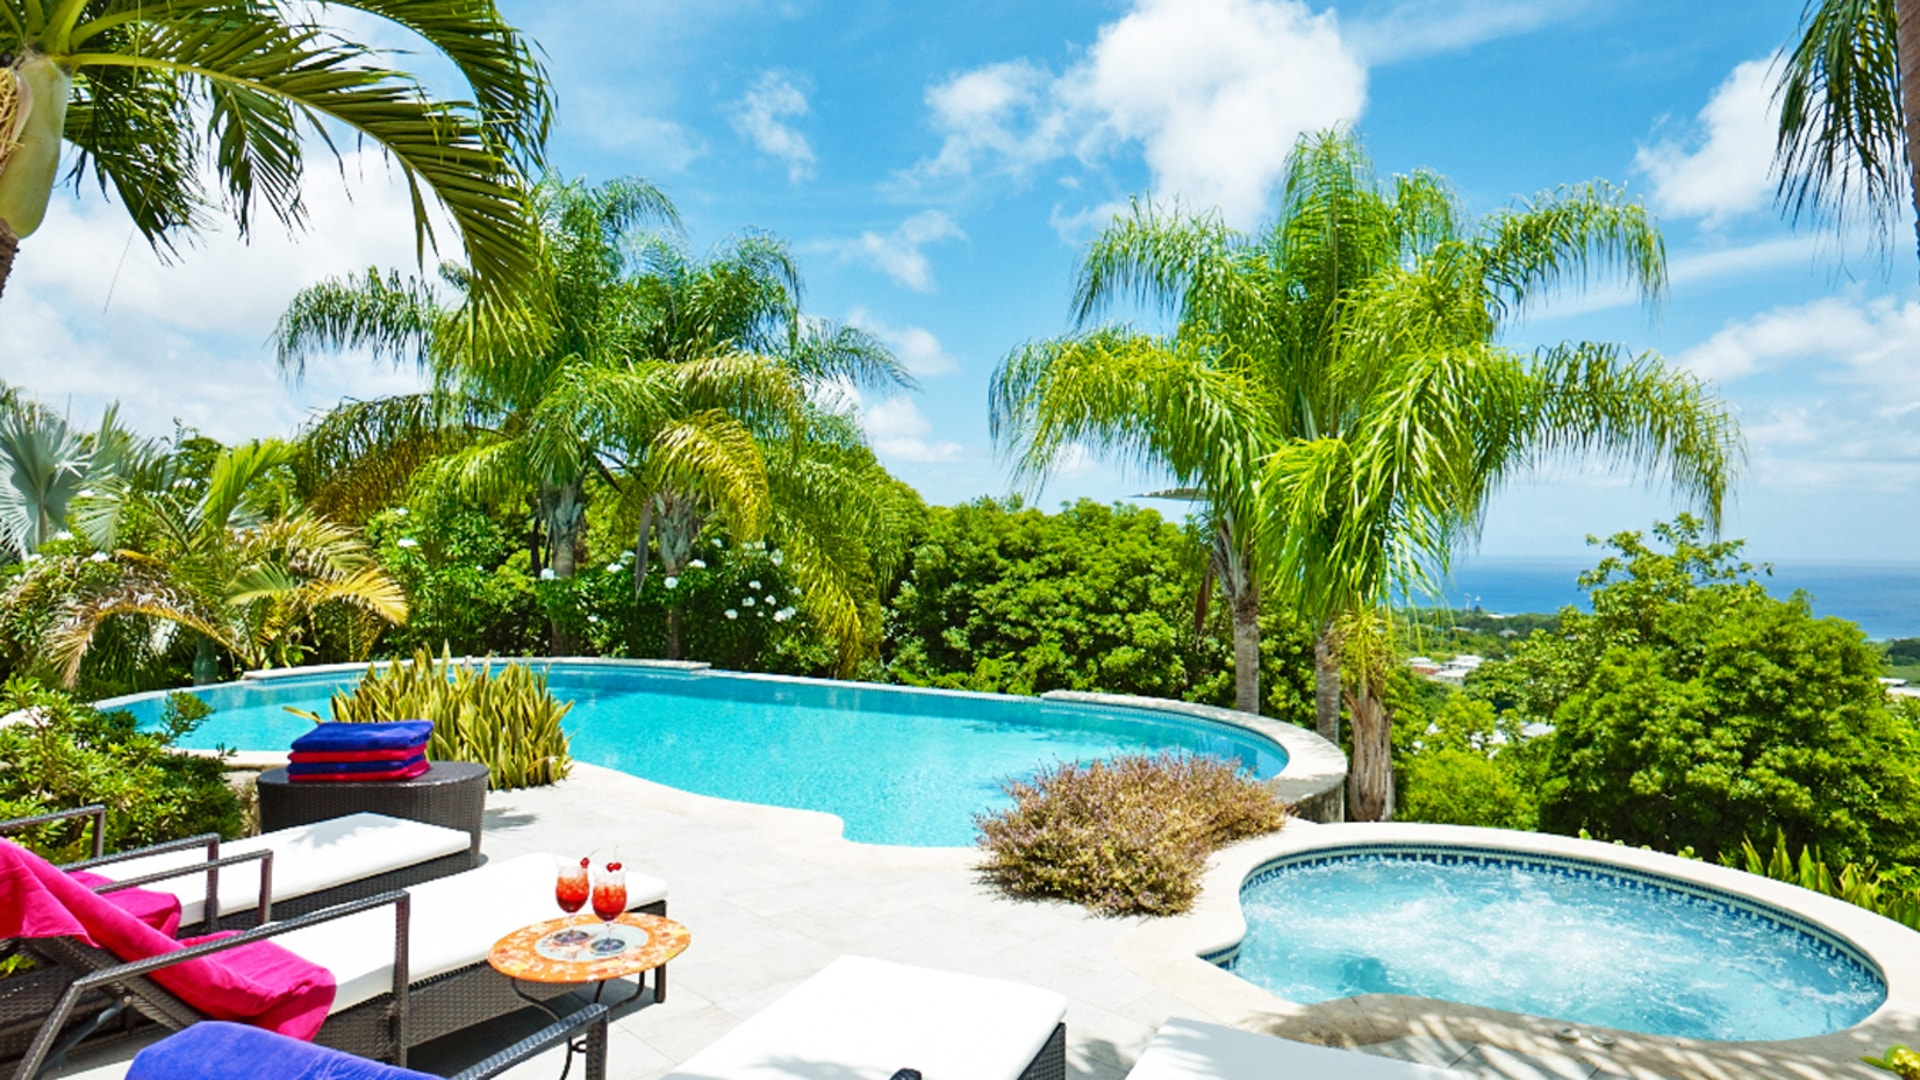 Pool And Jacuzzi Tortuga House Property For Sale In Barbados Terra Luxury